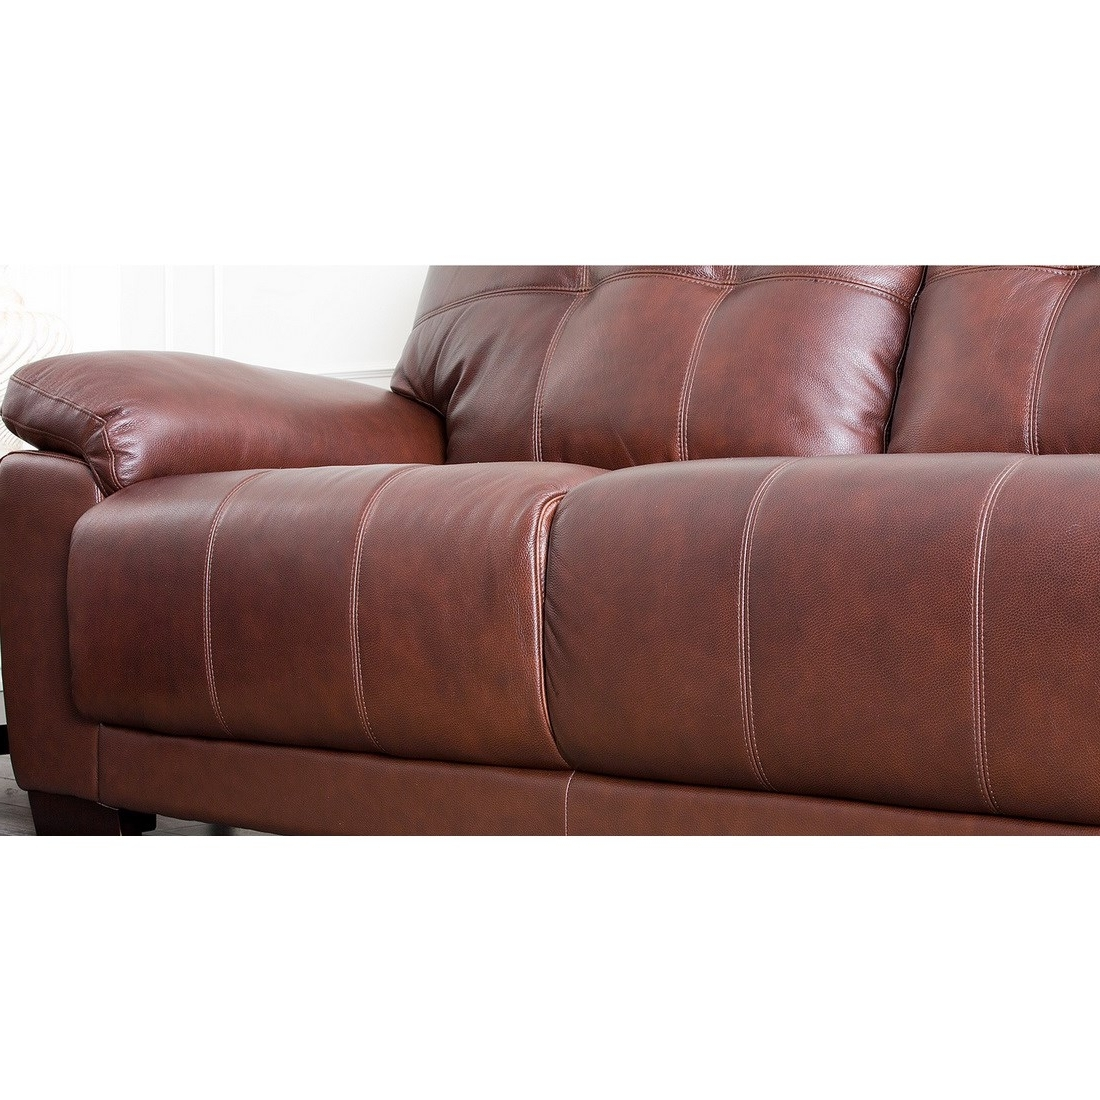 Latest Florence Leather Sofas For Abbyson Living Sf 5902 Cst 3 Florence Two Tone Brown Leather Sofa (View 13 of 20)